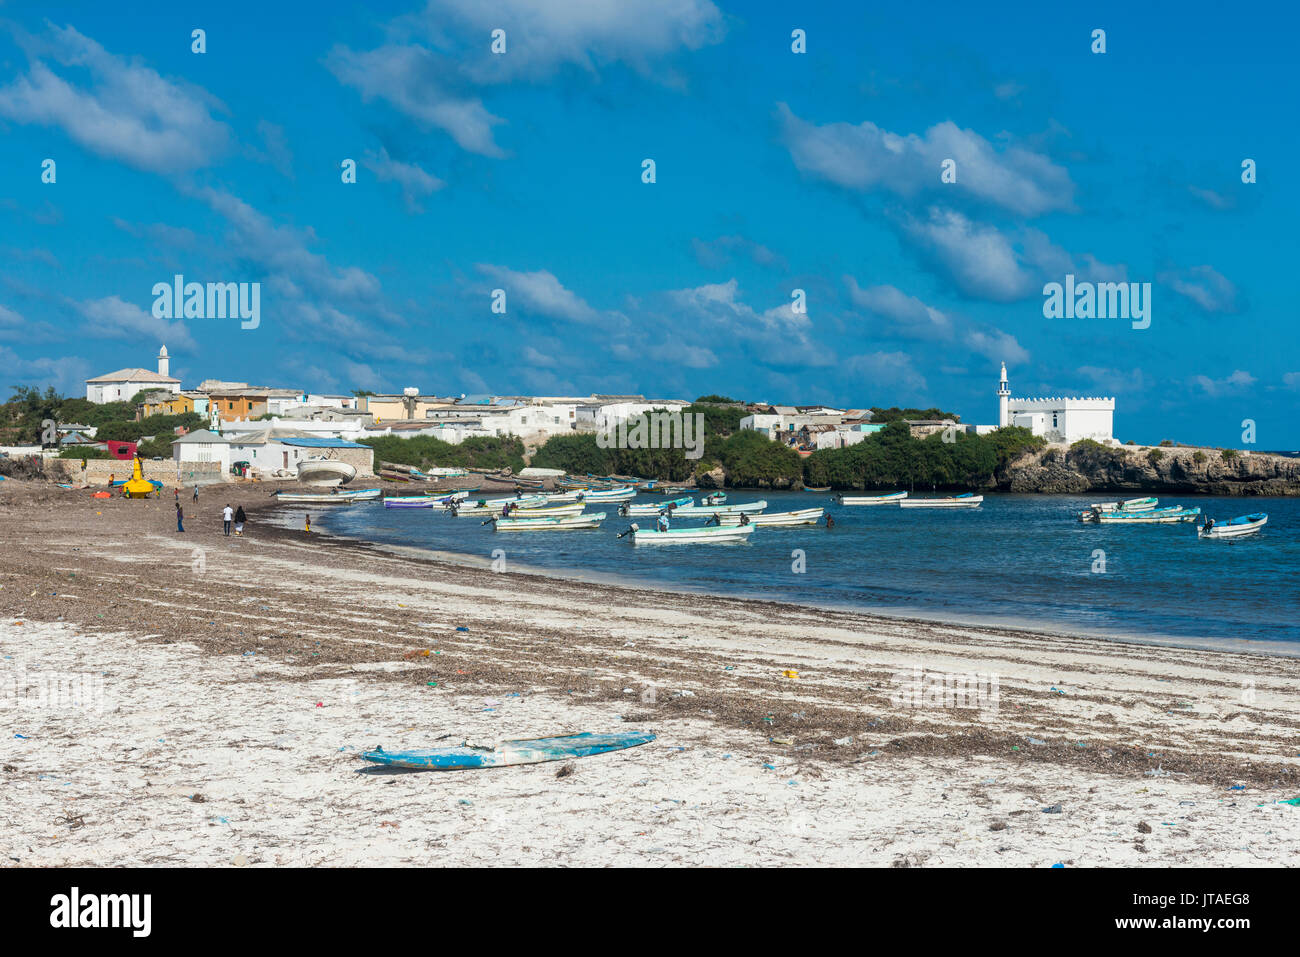 The town of Jazeera at the end of Jazeera beach, Somalia, Africa - Stock Image